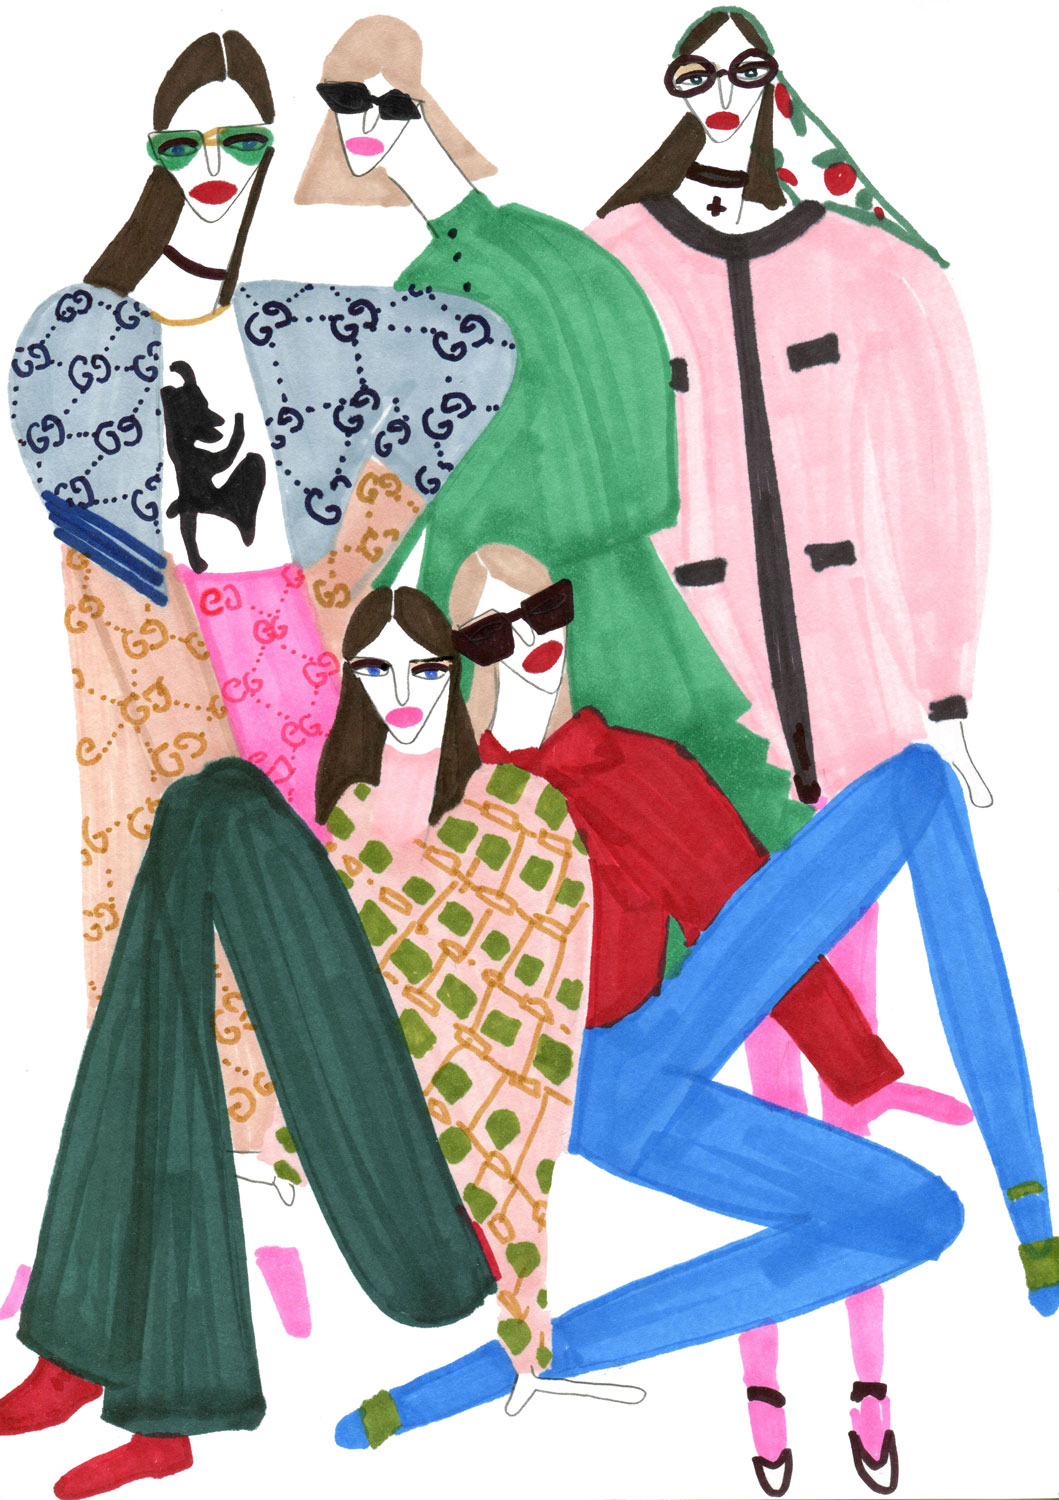 Figurative illustration for Girls in Gucci